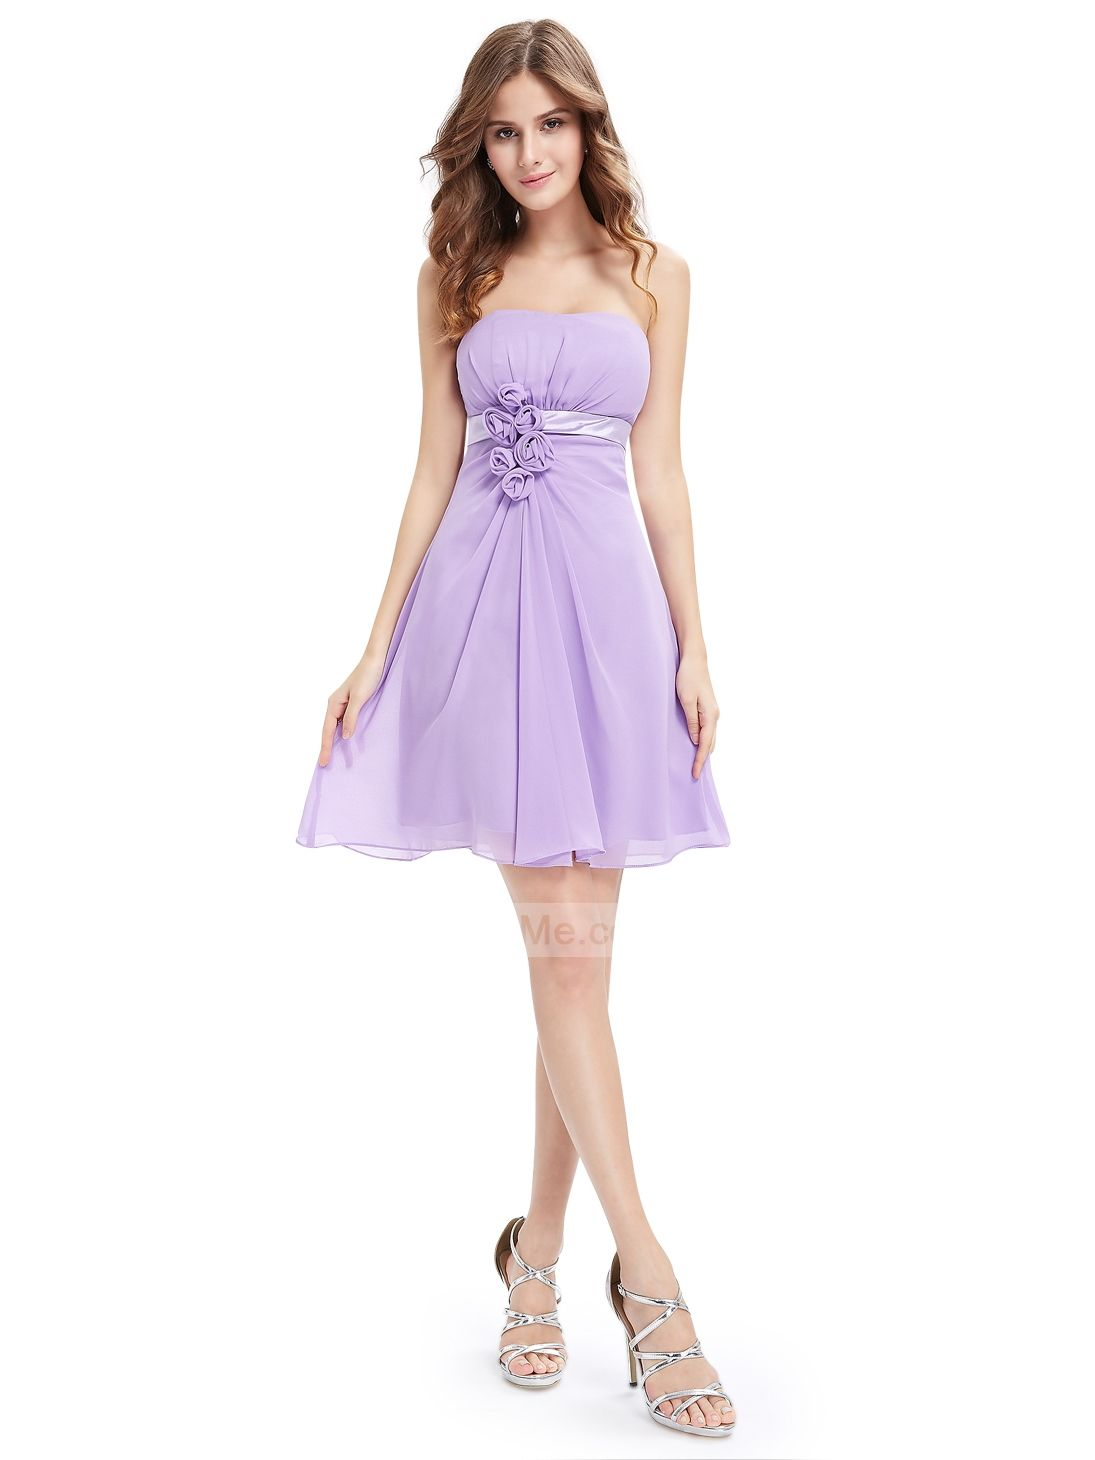 Lilac chiffon popular scoop neck empire waist a line short prom